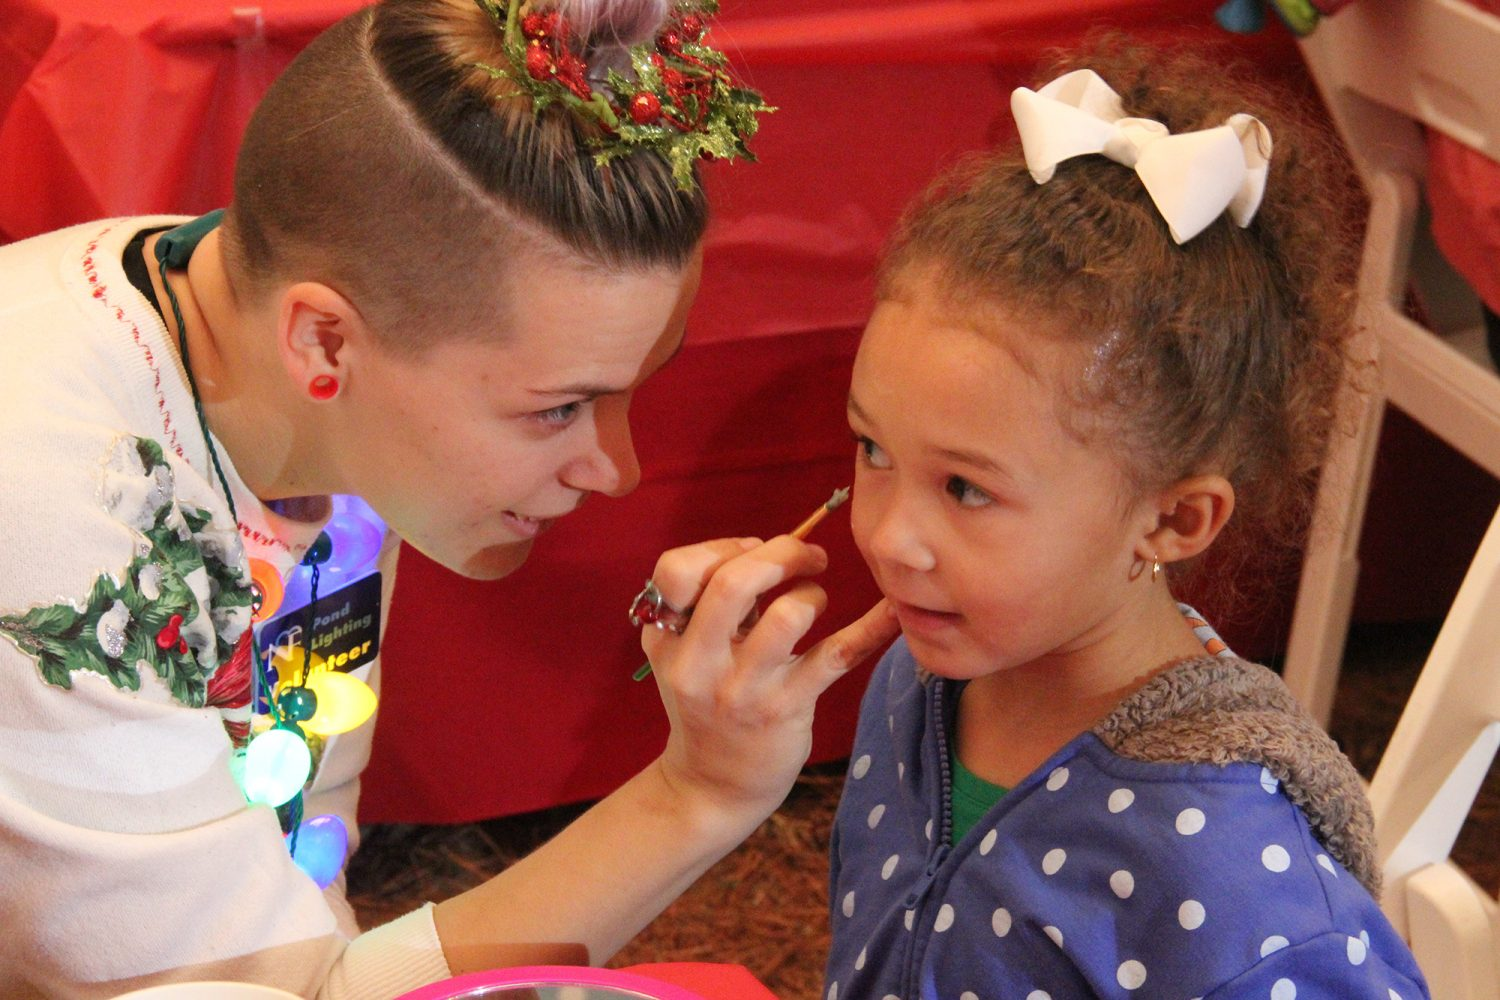 Within the face painting tent, a North Florida Regional Medical Center volunteer paints a snowman on a young girl's cheek at the Pond Lighting Festival Friday night. (photo by Visshaael Patel)